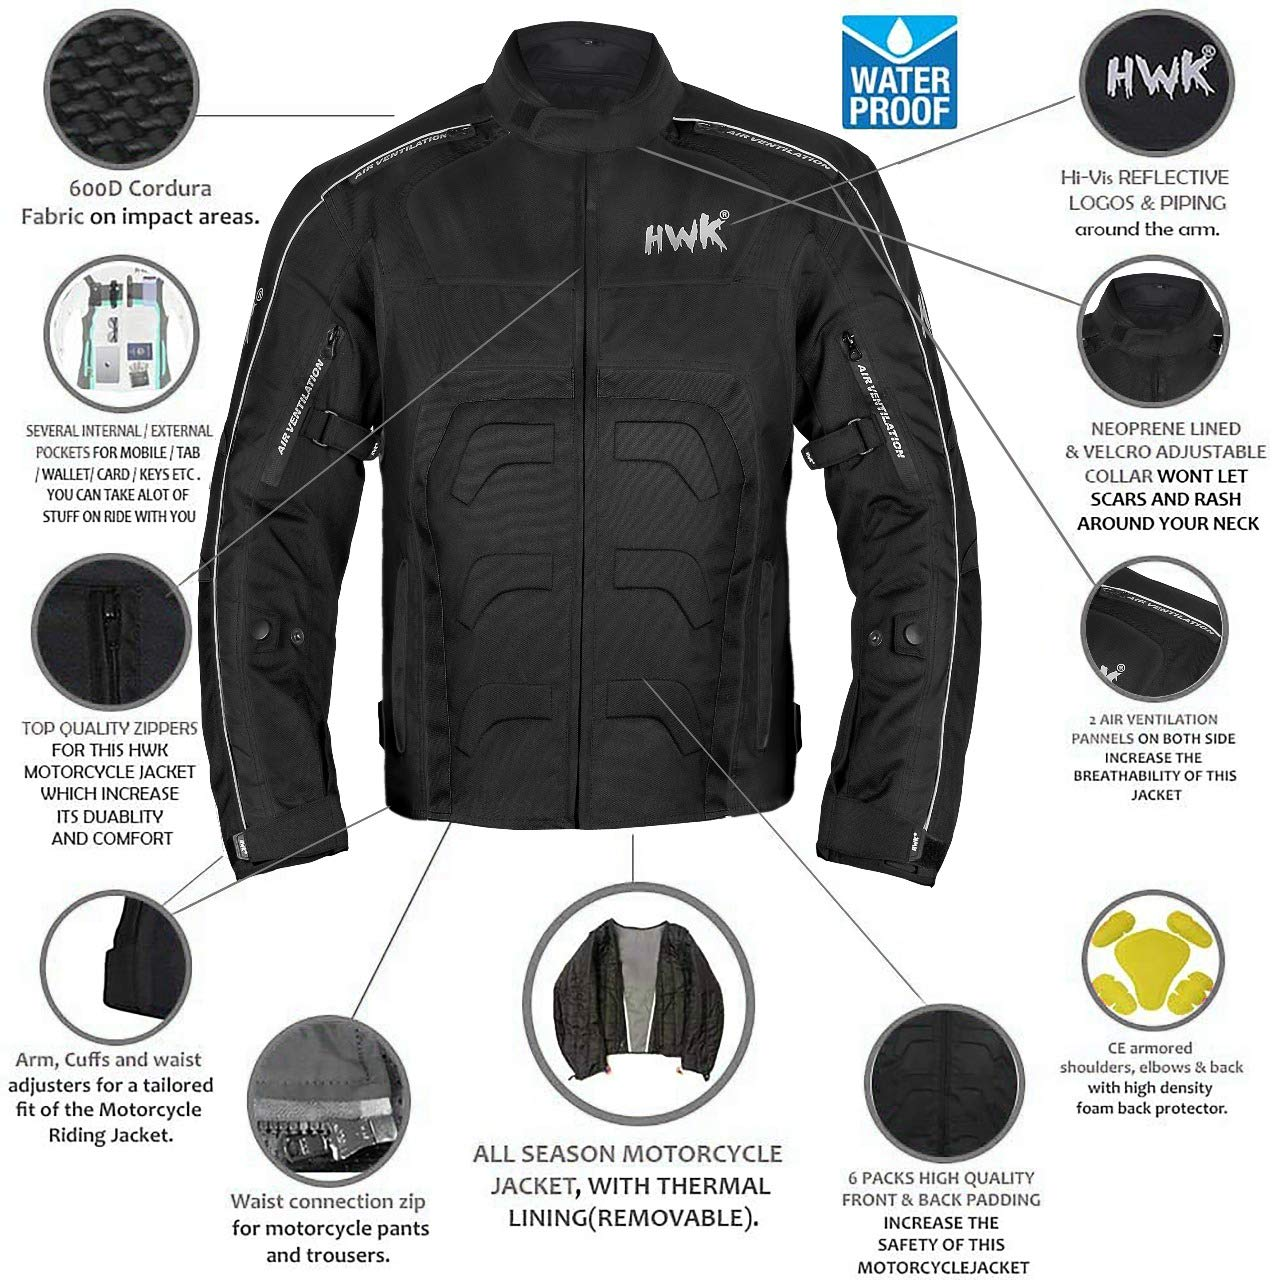 HWK Textile Motorcycle Jacket Motorbike Jacket Biker Riding Jacket Cordura Waterproof CE Armoured Breathable Reissa Membrane - Removable Thermal ...